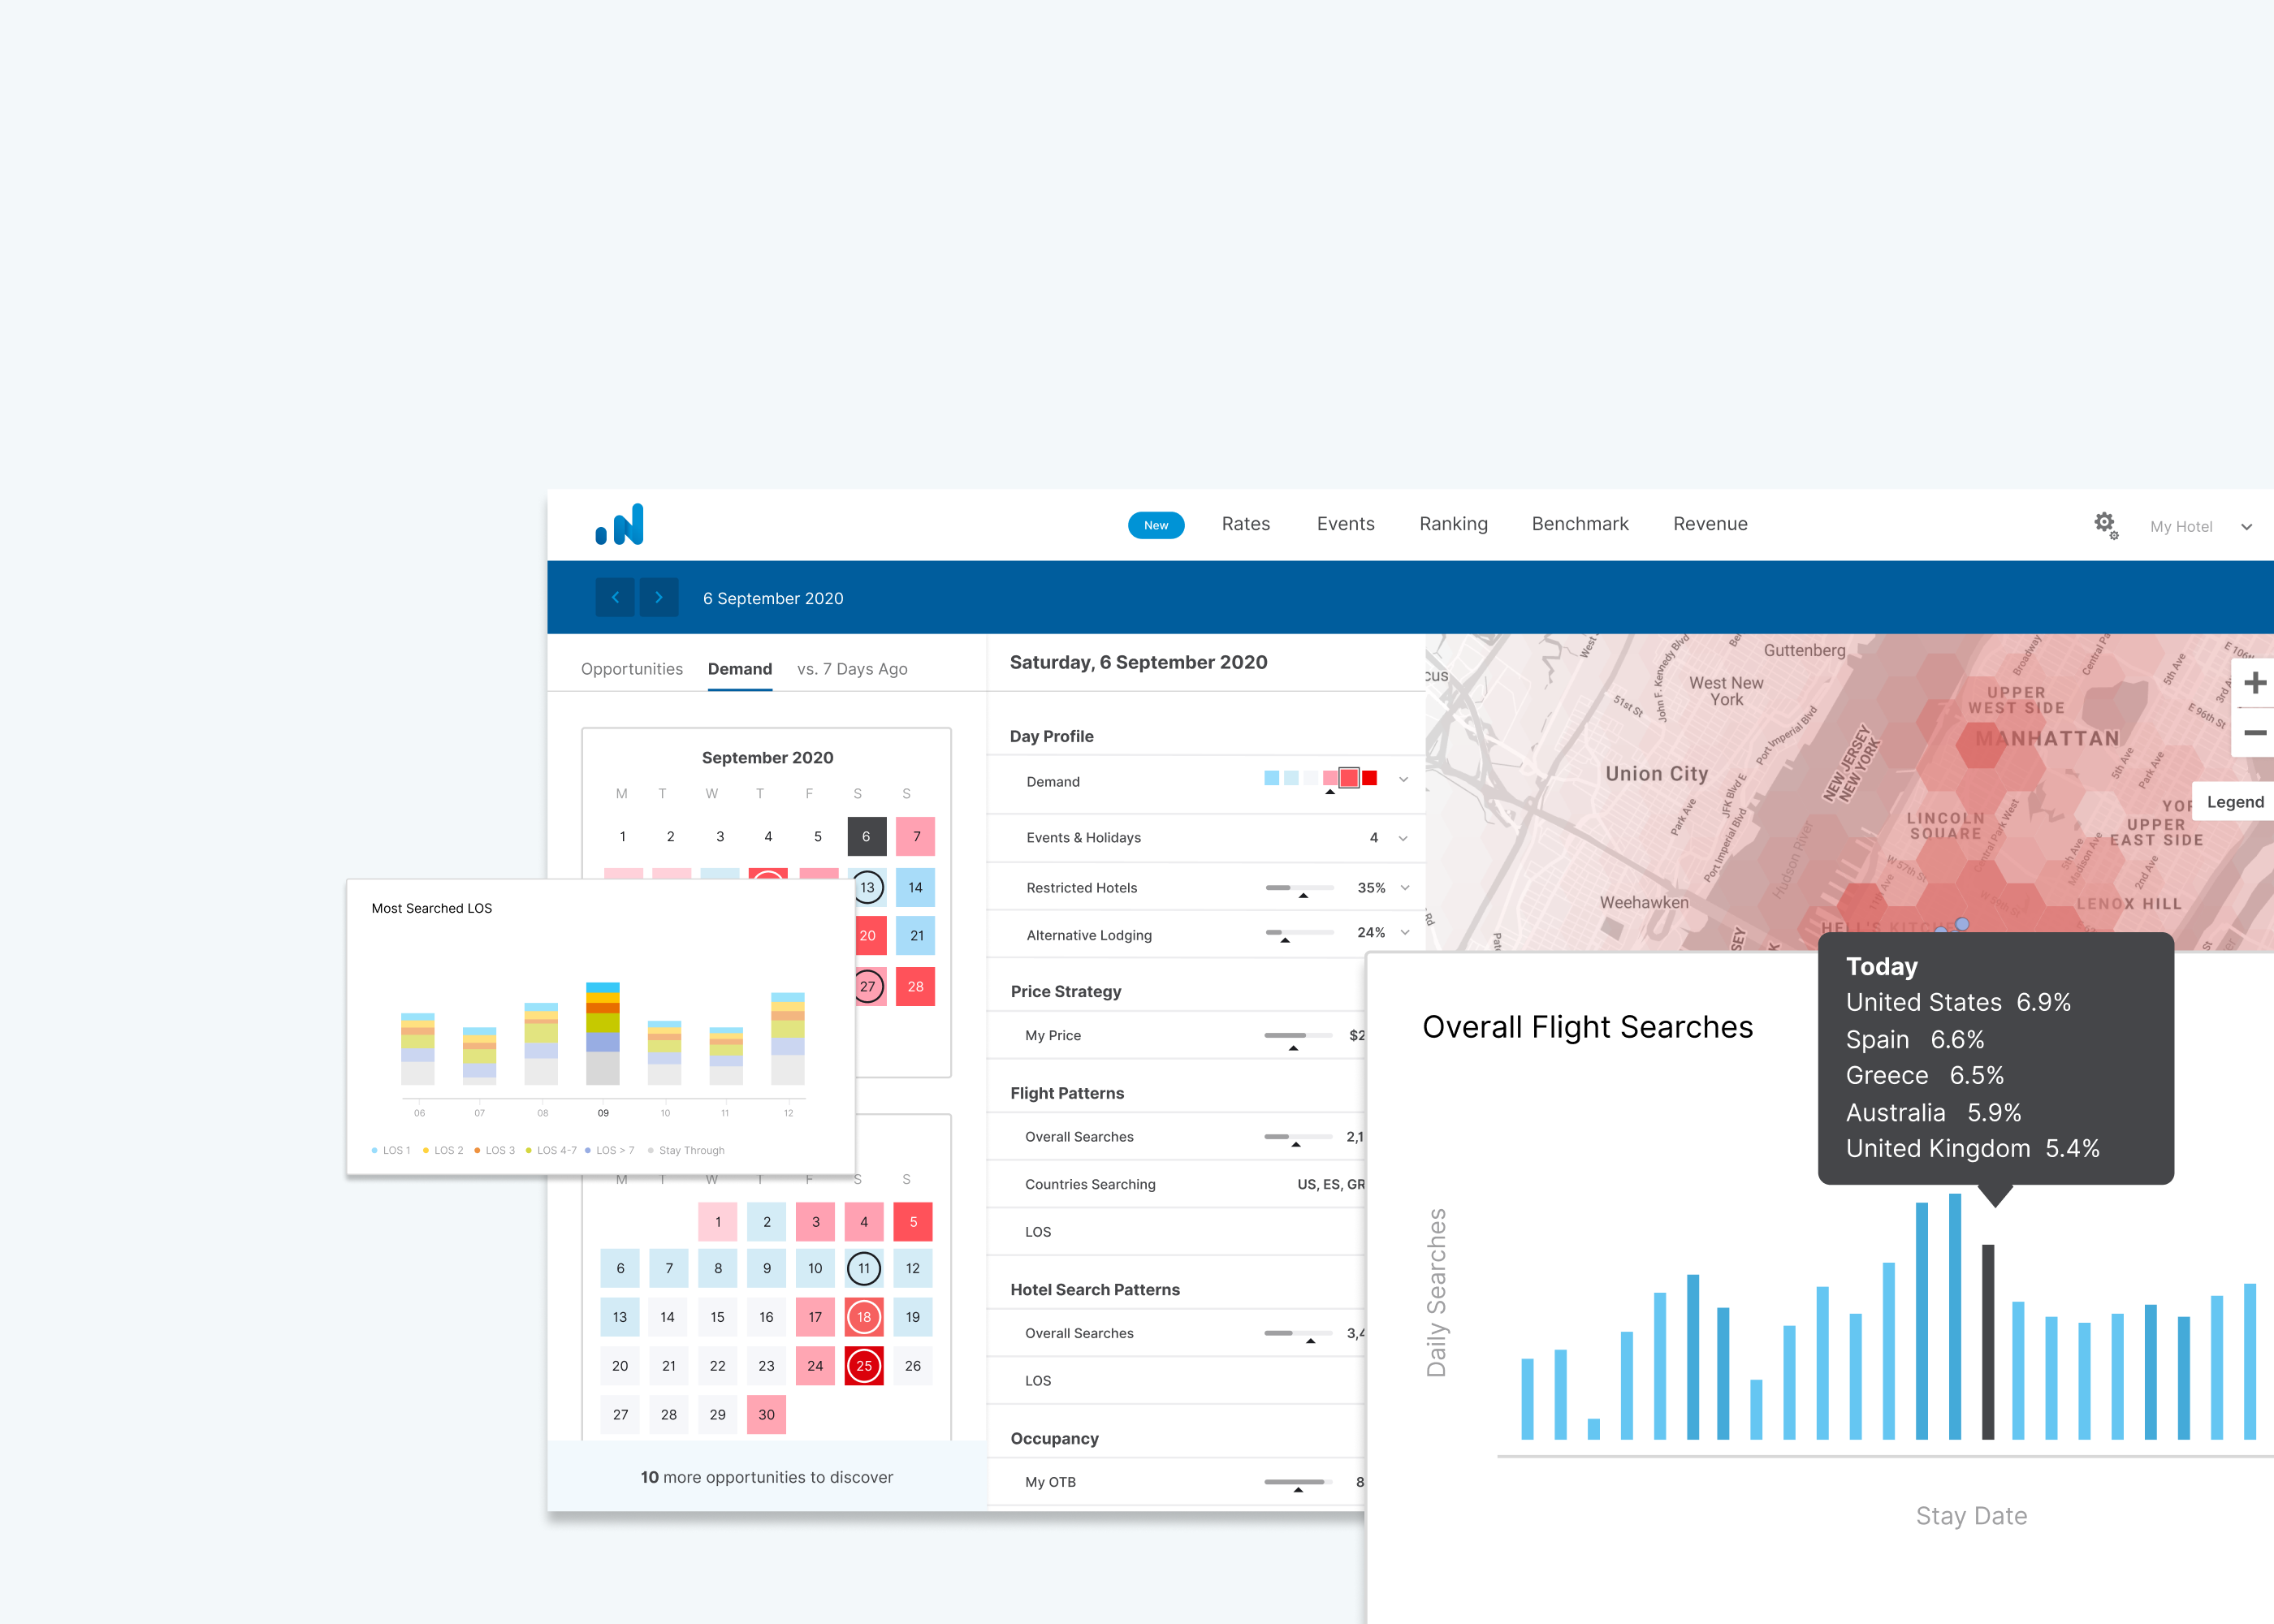 OTA Insight shapes the future of real-time market intelligence with Market Insight